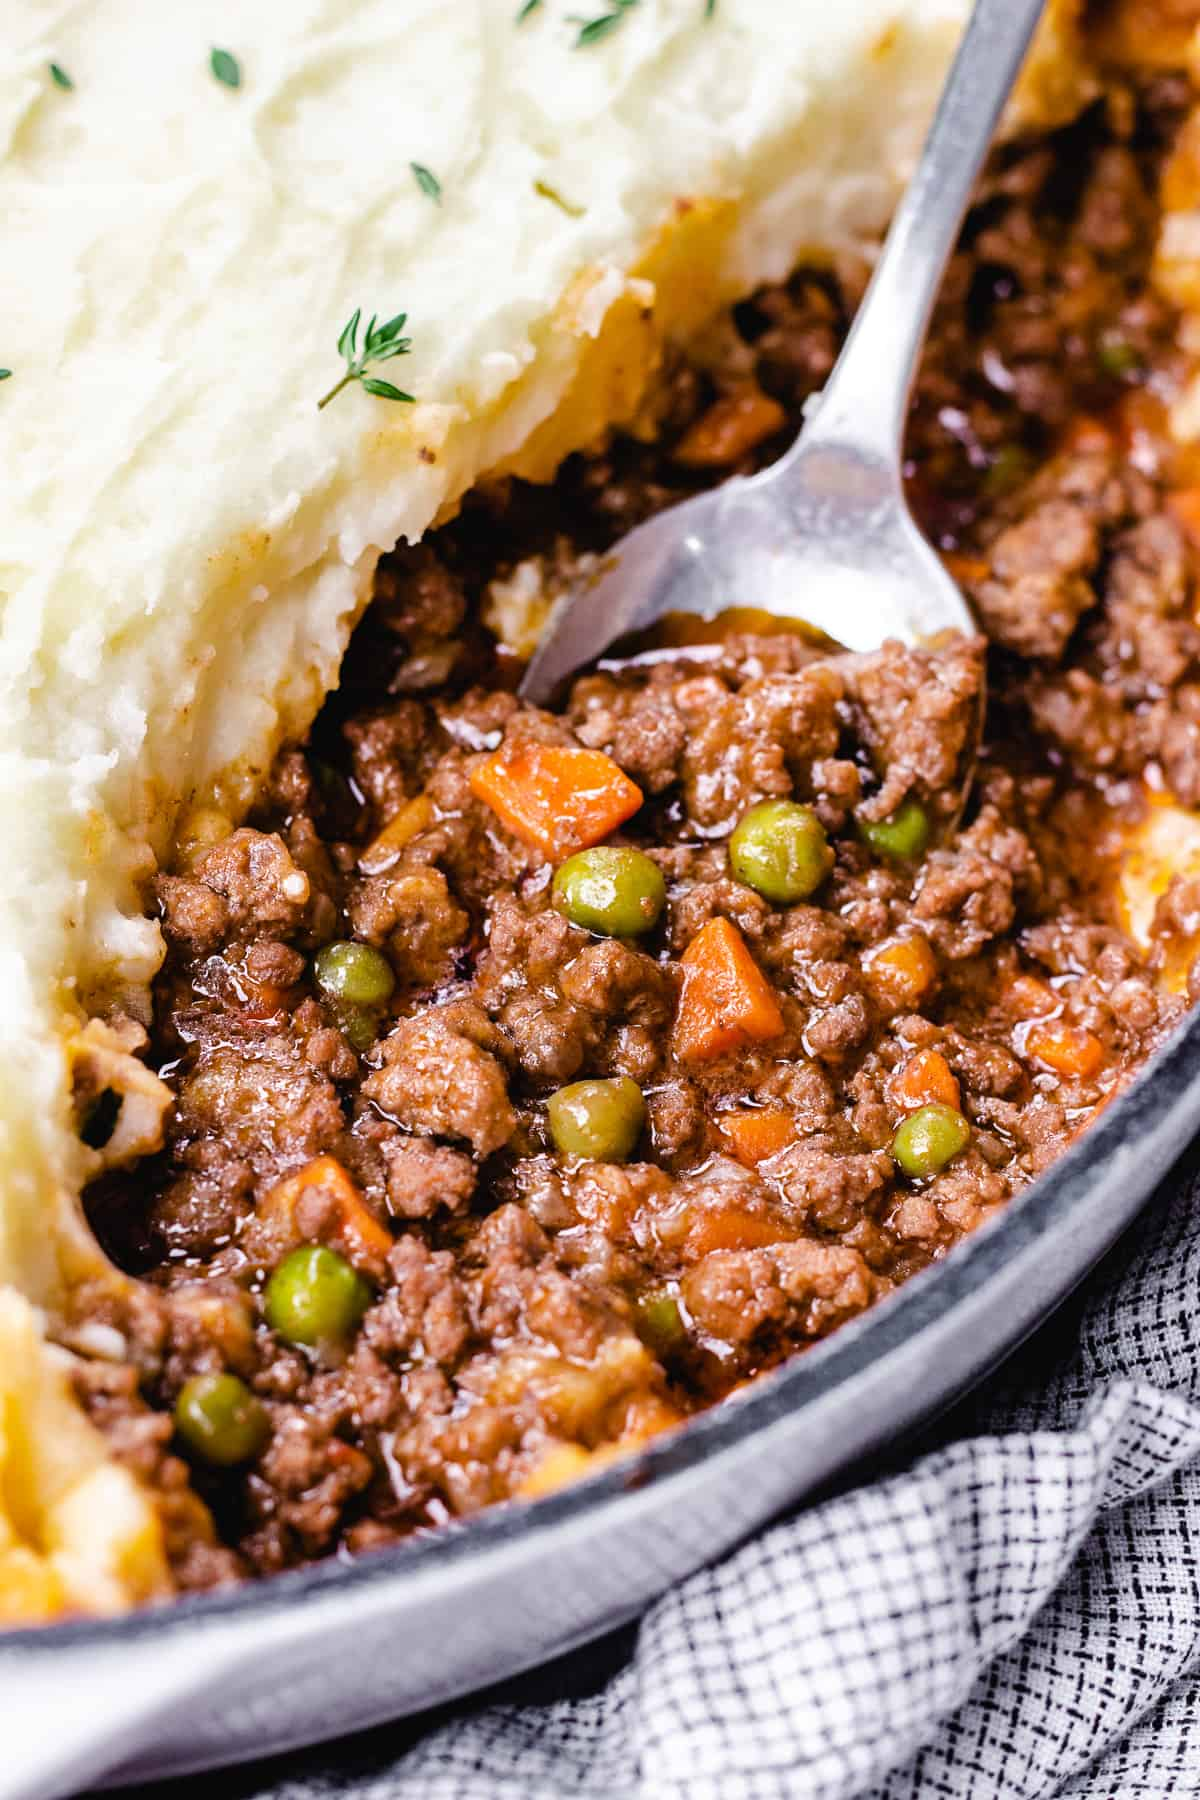 Shepherd's Pie in a white casserole with a spoon scooping out.